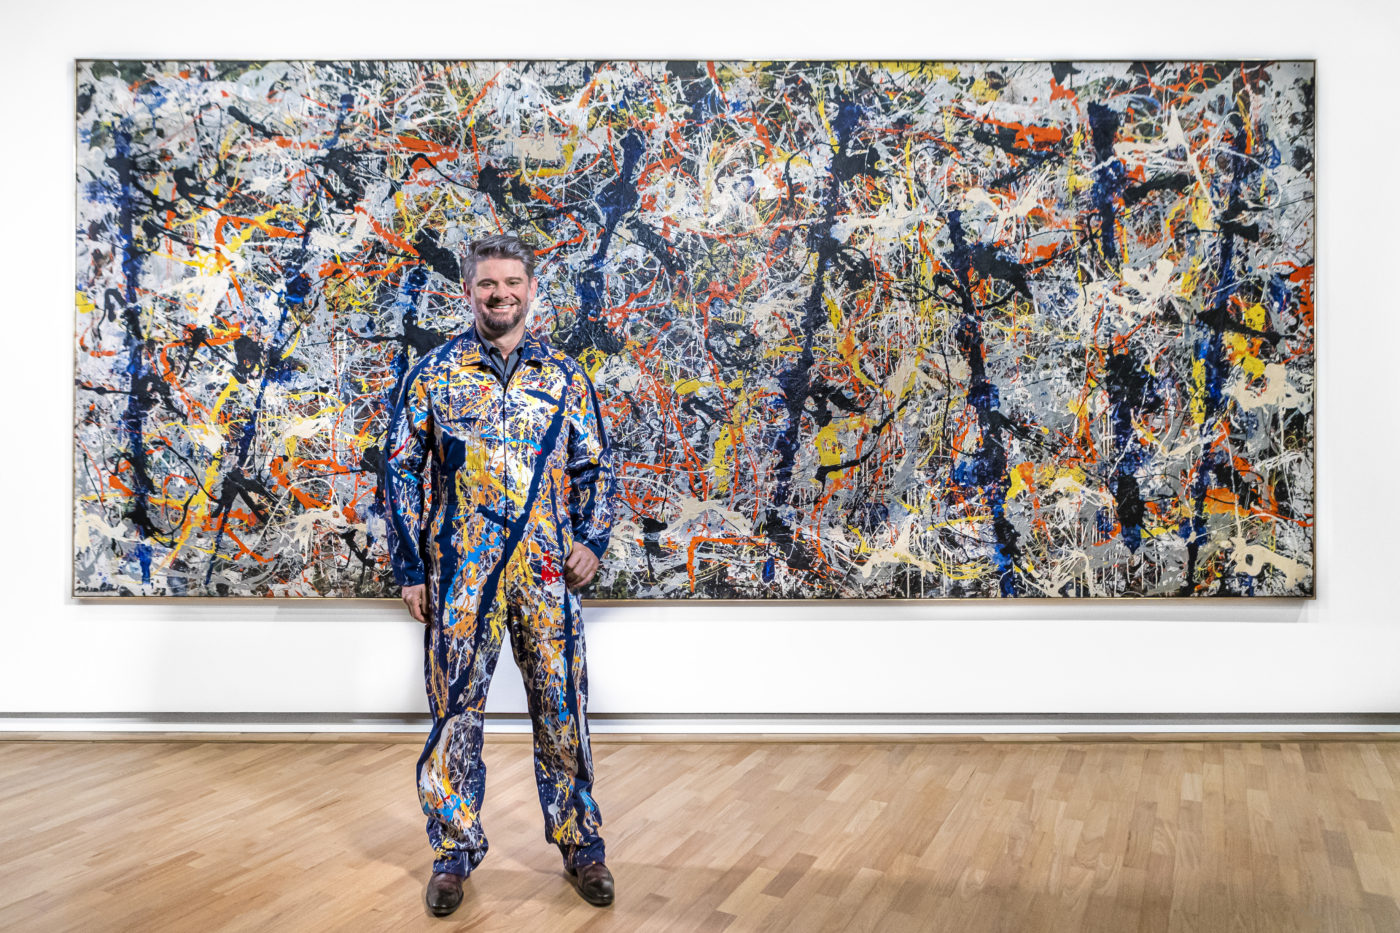 Nick Mitzevich with Jackson Pollock's 'Blue poles'